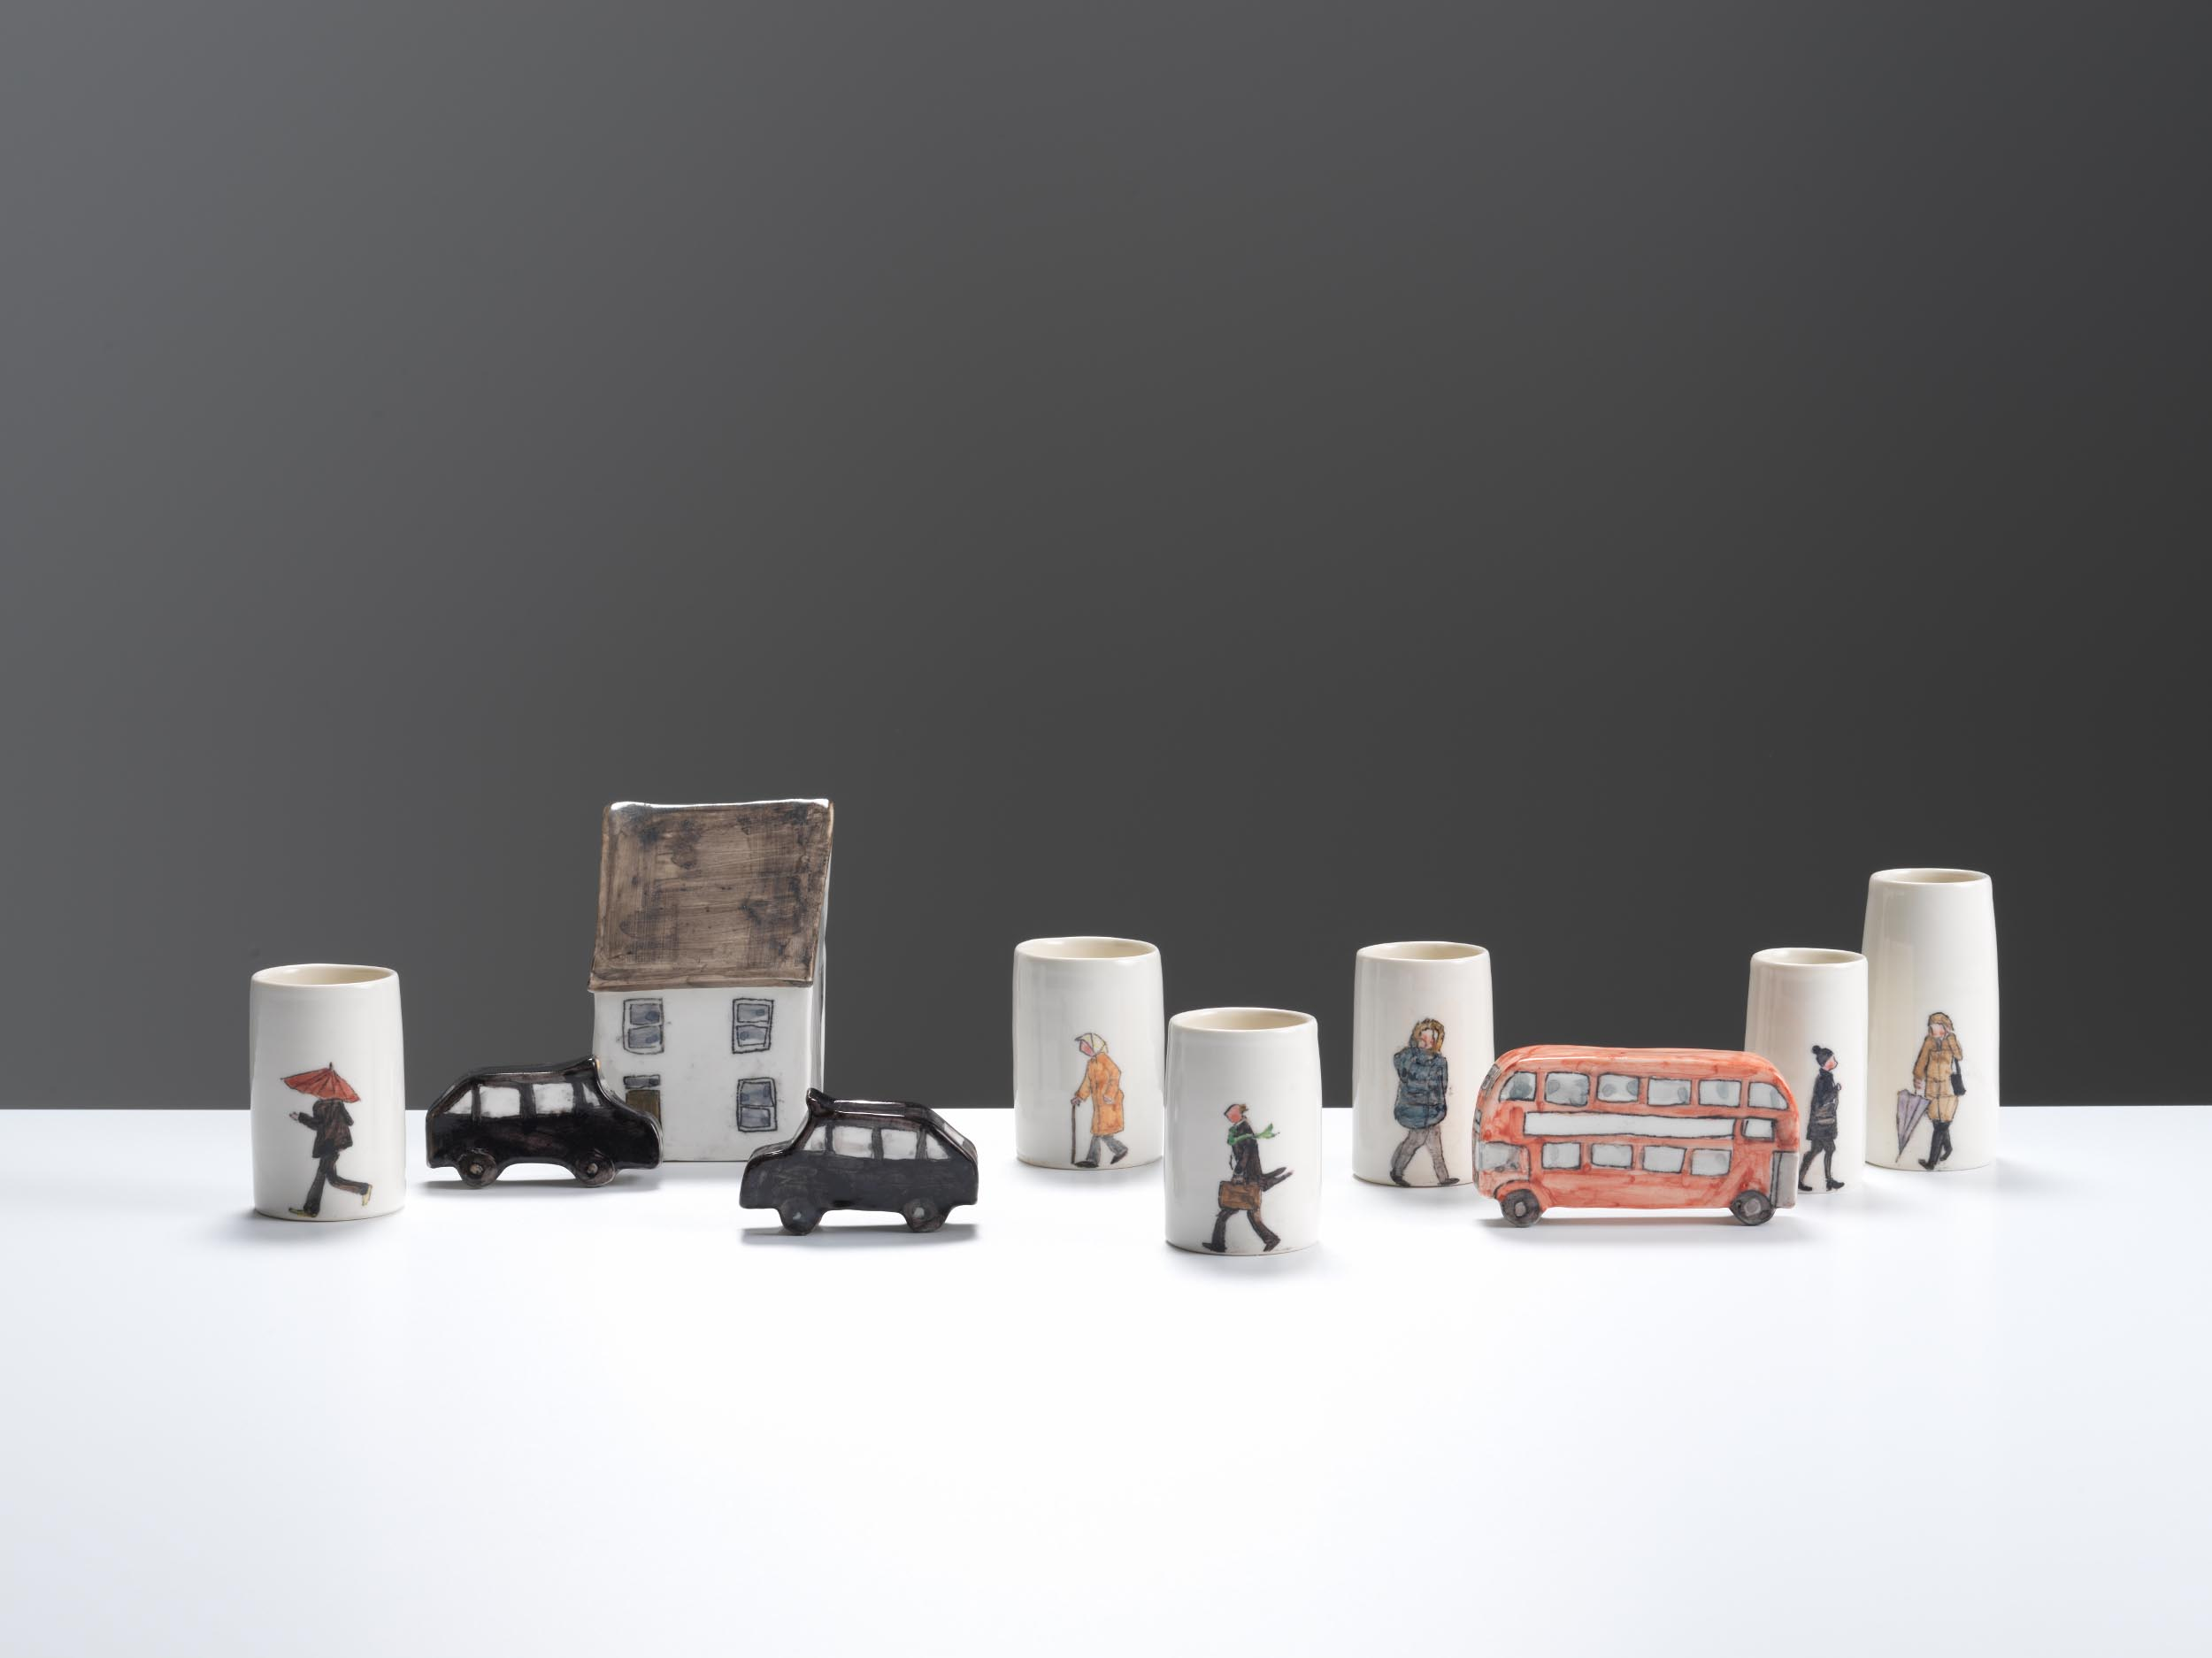 London Rain, 2018, wheel-thrown and hand-built, hand-painted porcelain, 10-15cm height (various pieces)